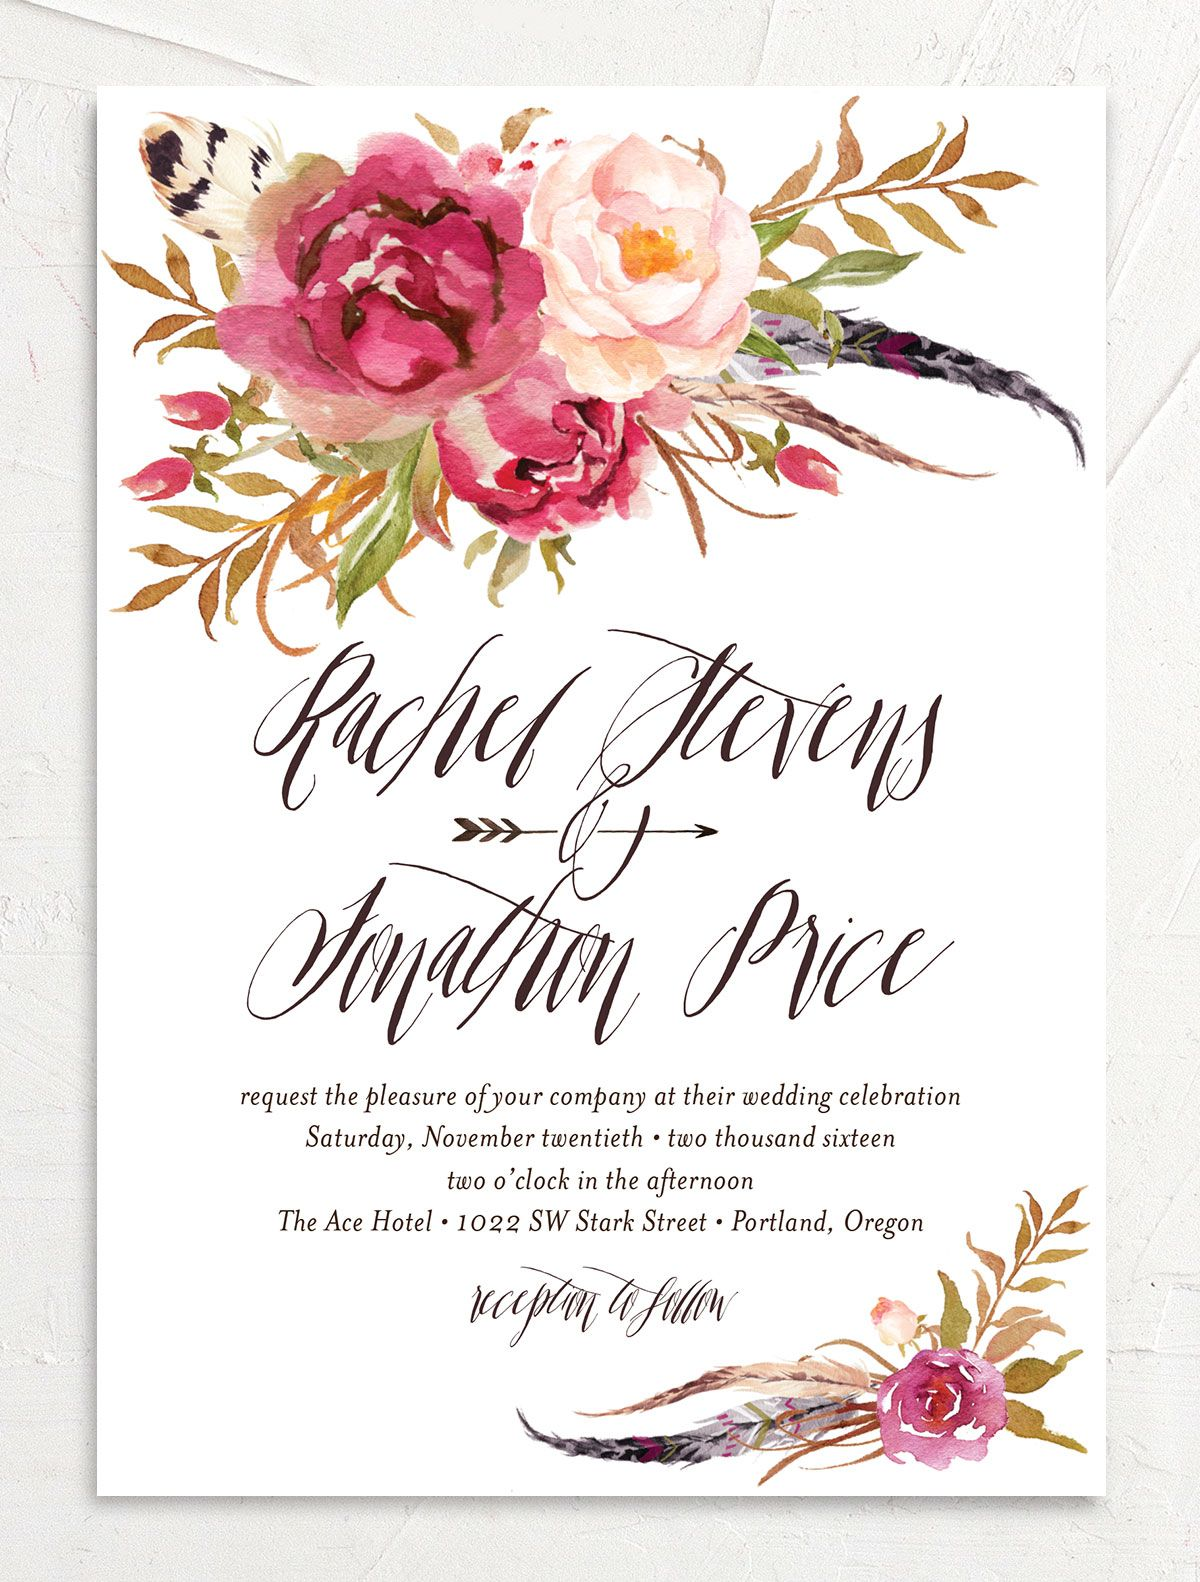 bohemian floral wedding invitations in pink